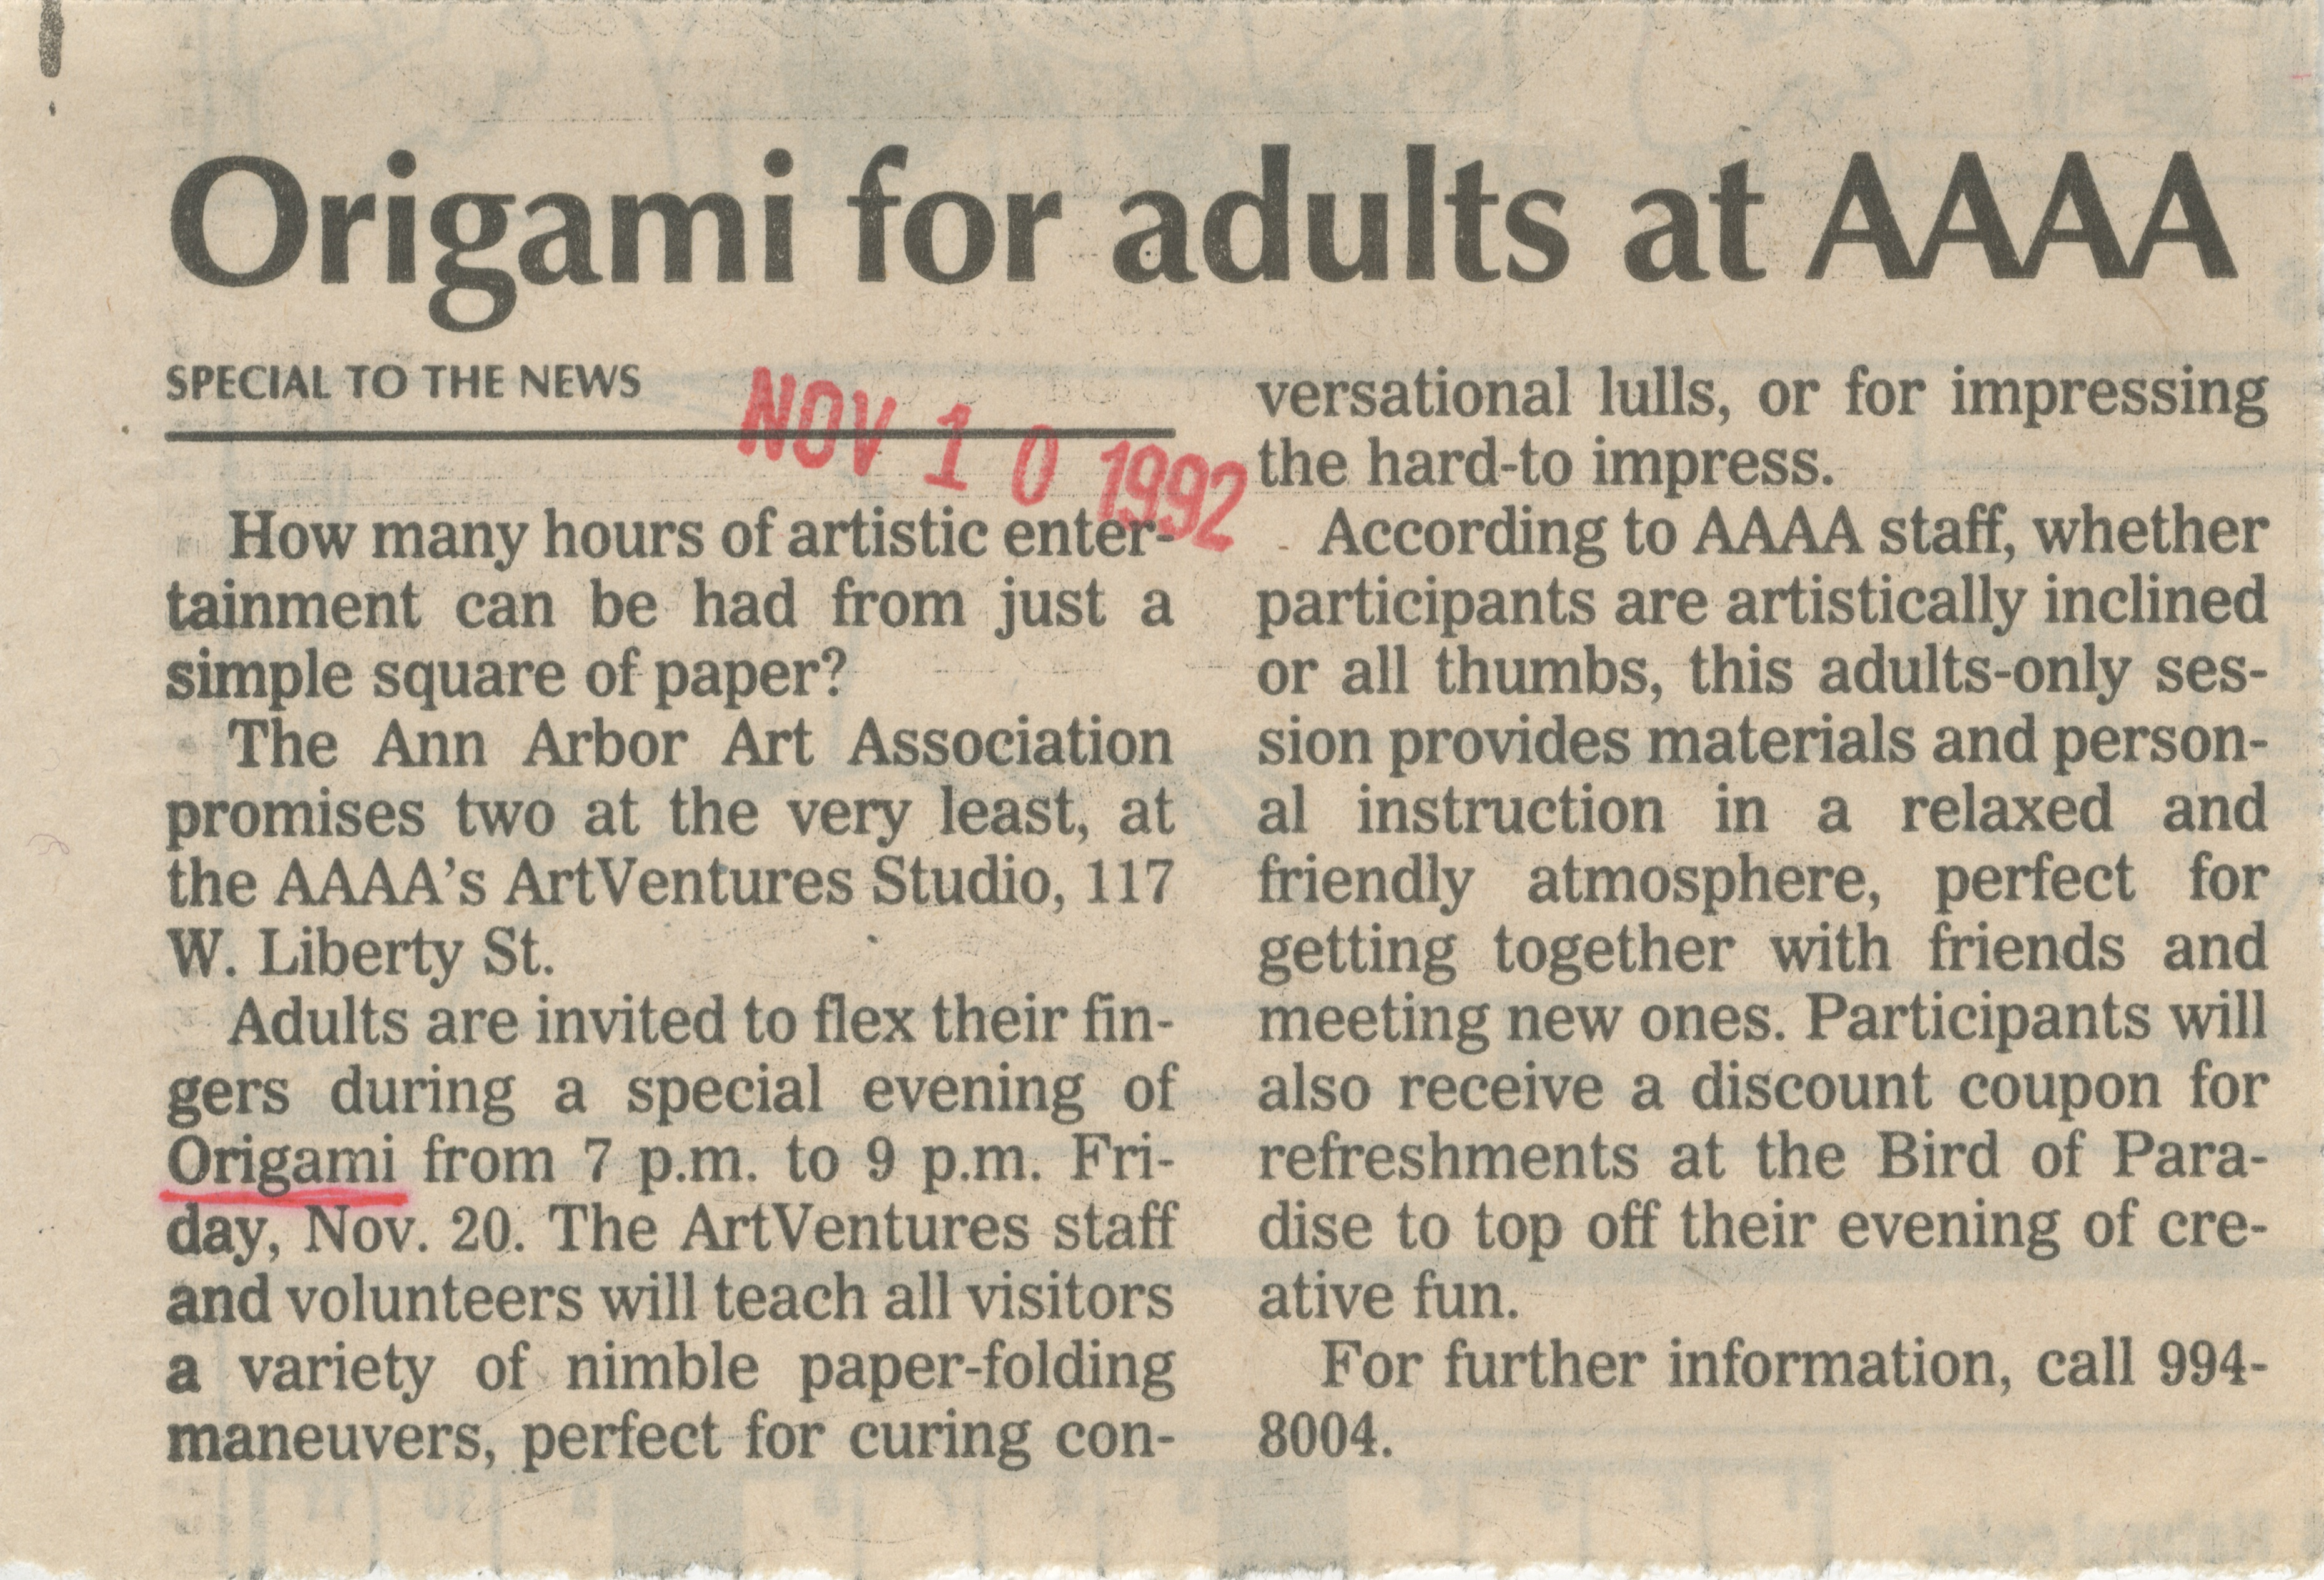 Origami For Adults At AAAA image